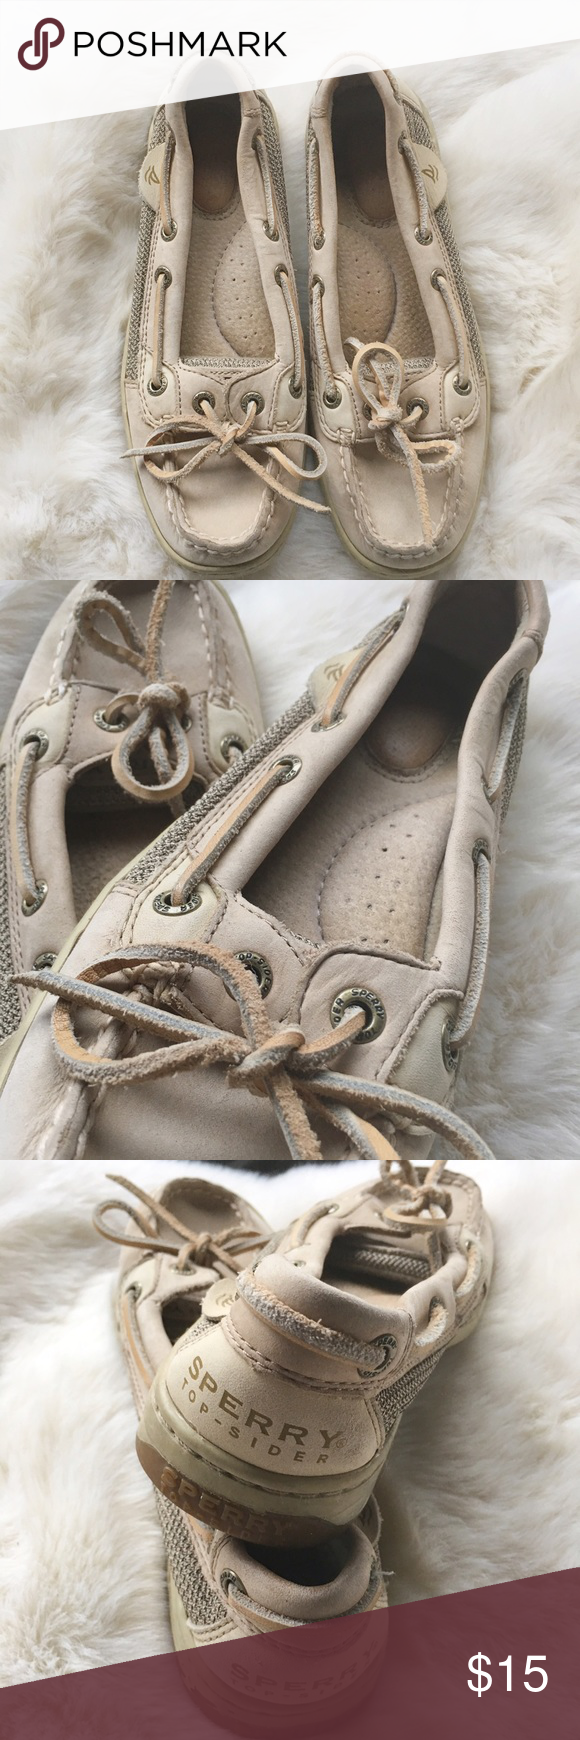 SPERRY boat shoes Good Condition - USED Sperry Top-Sider Shoes Espadrilles